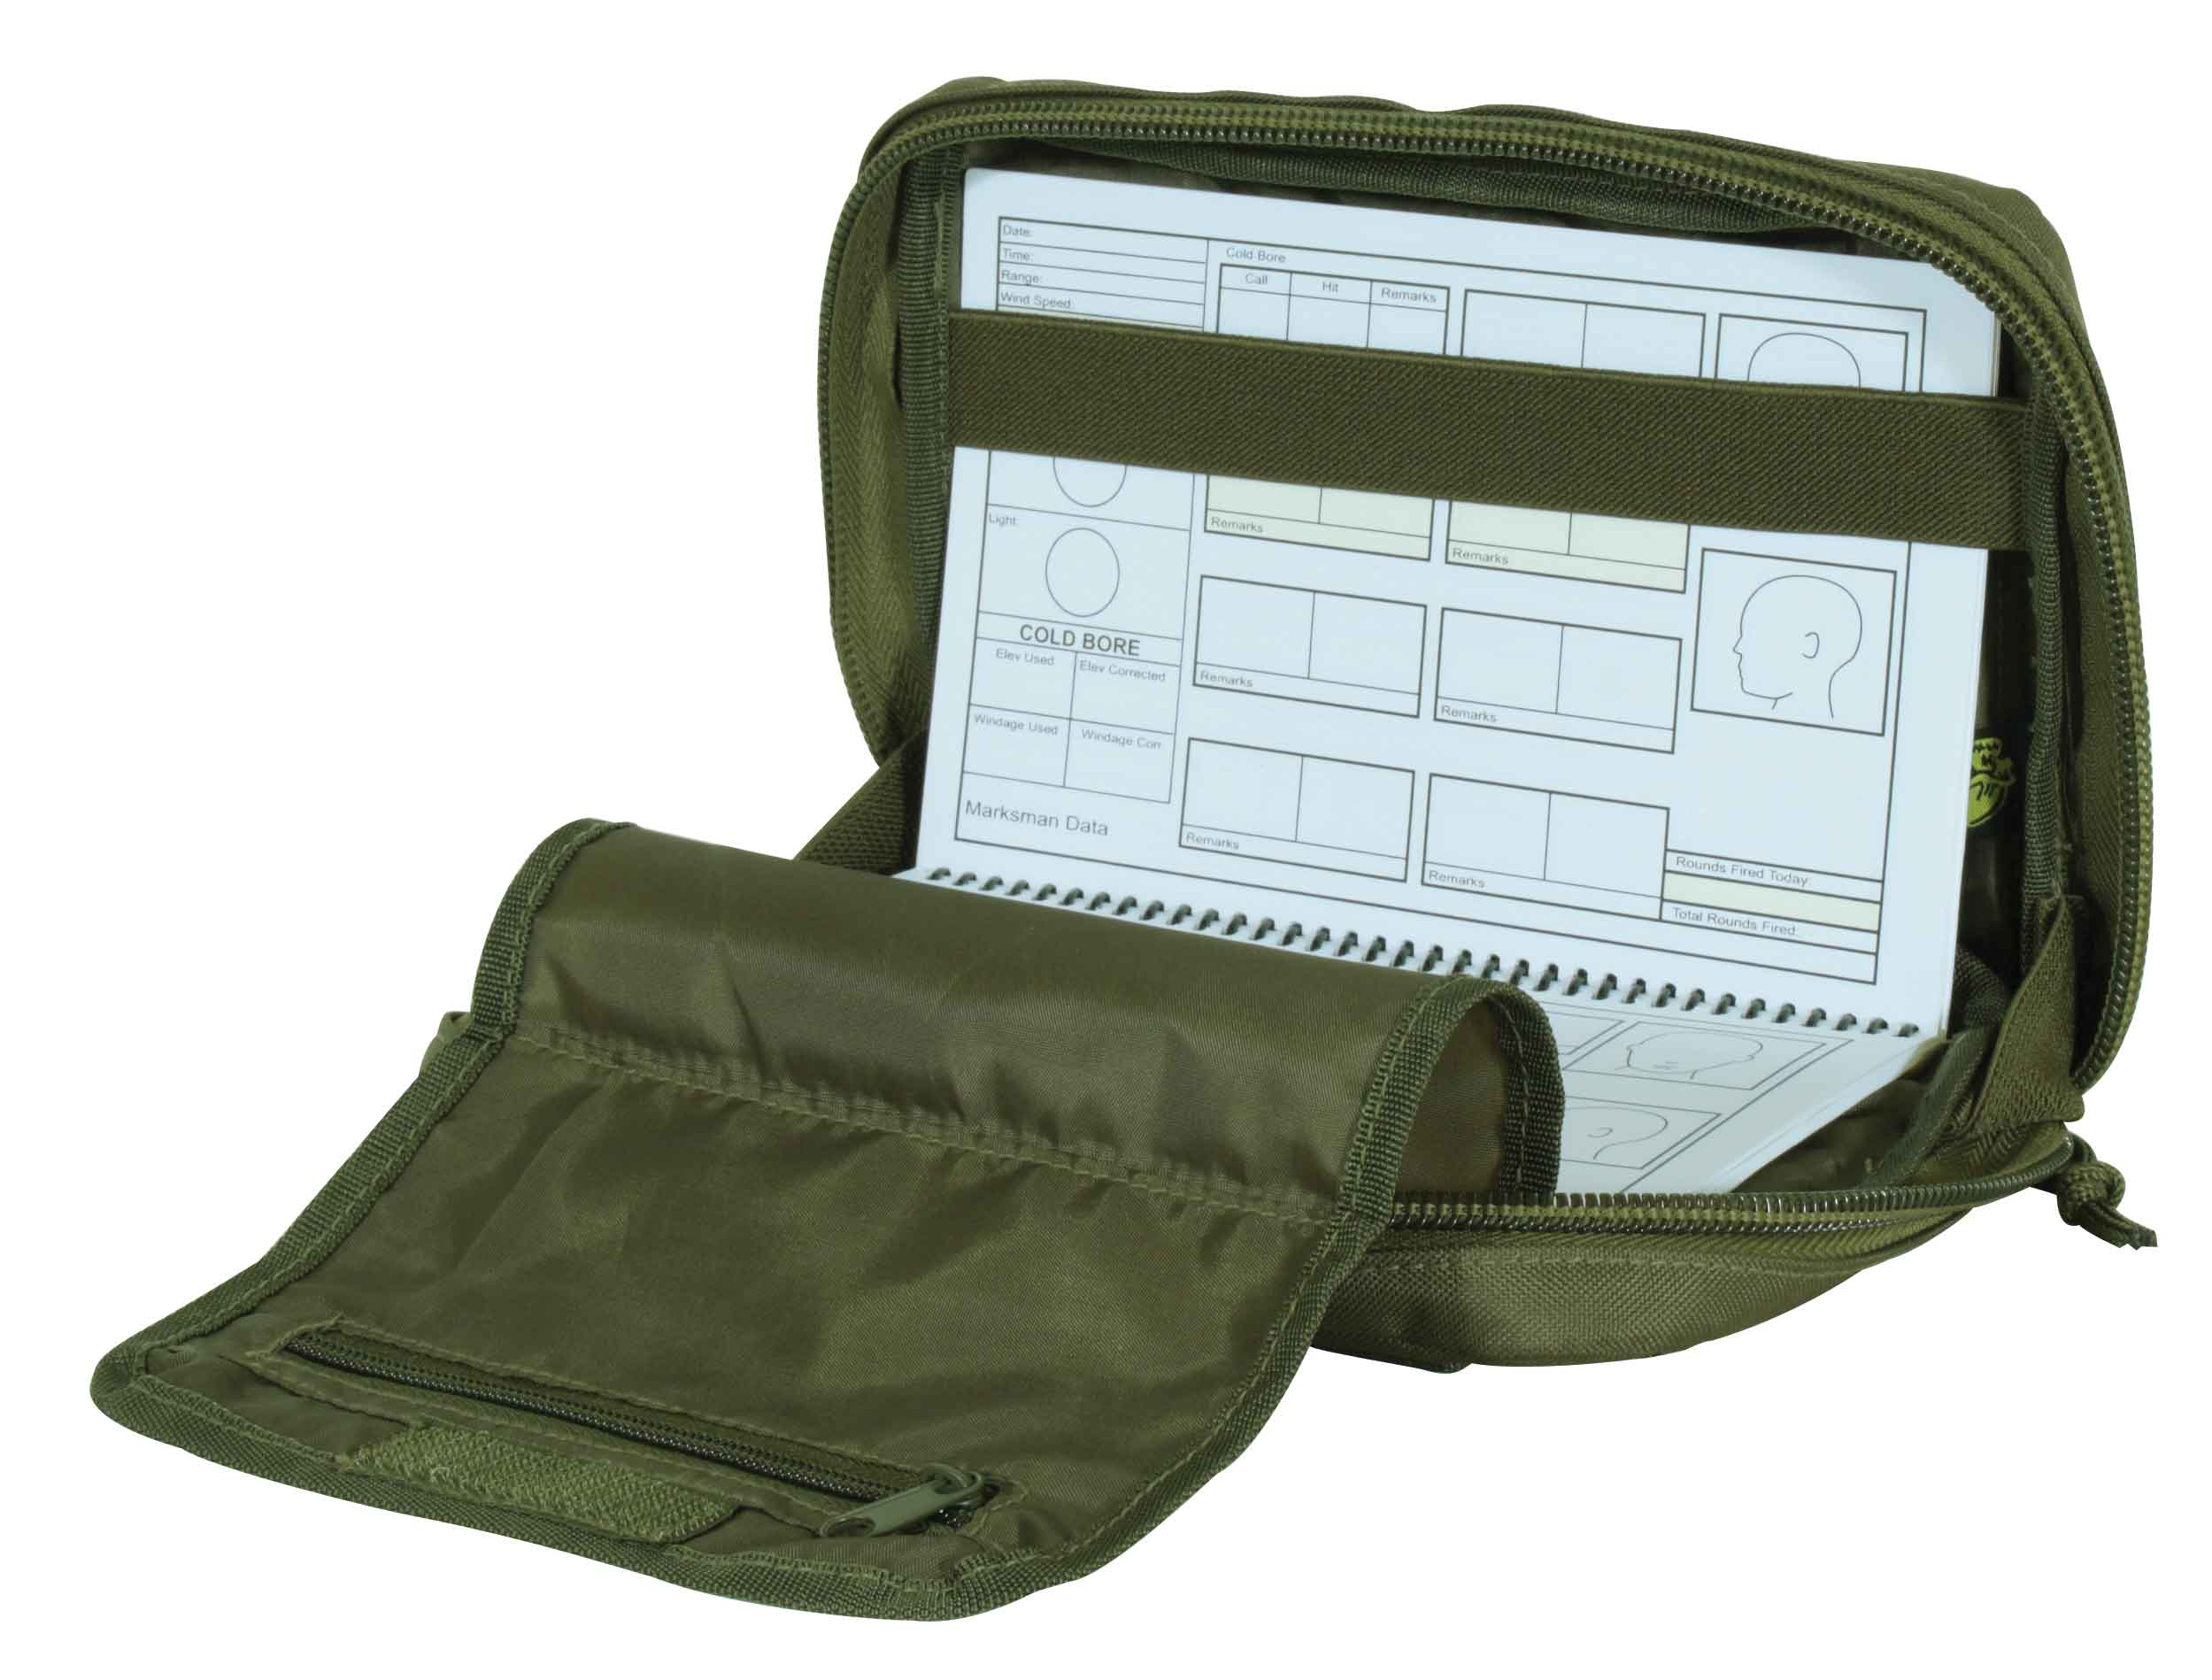 Sniper's Data Book Pouch